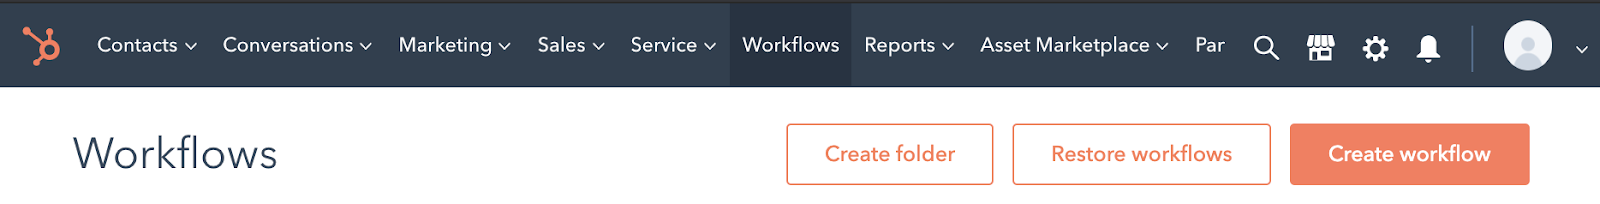 HubSpot workflow section